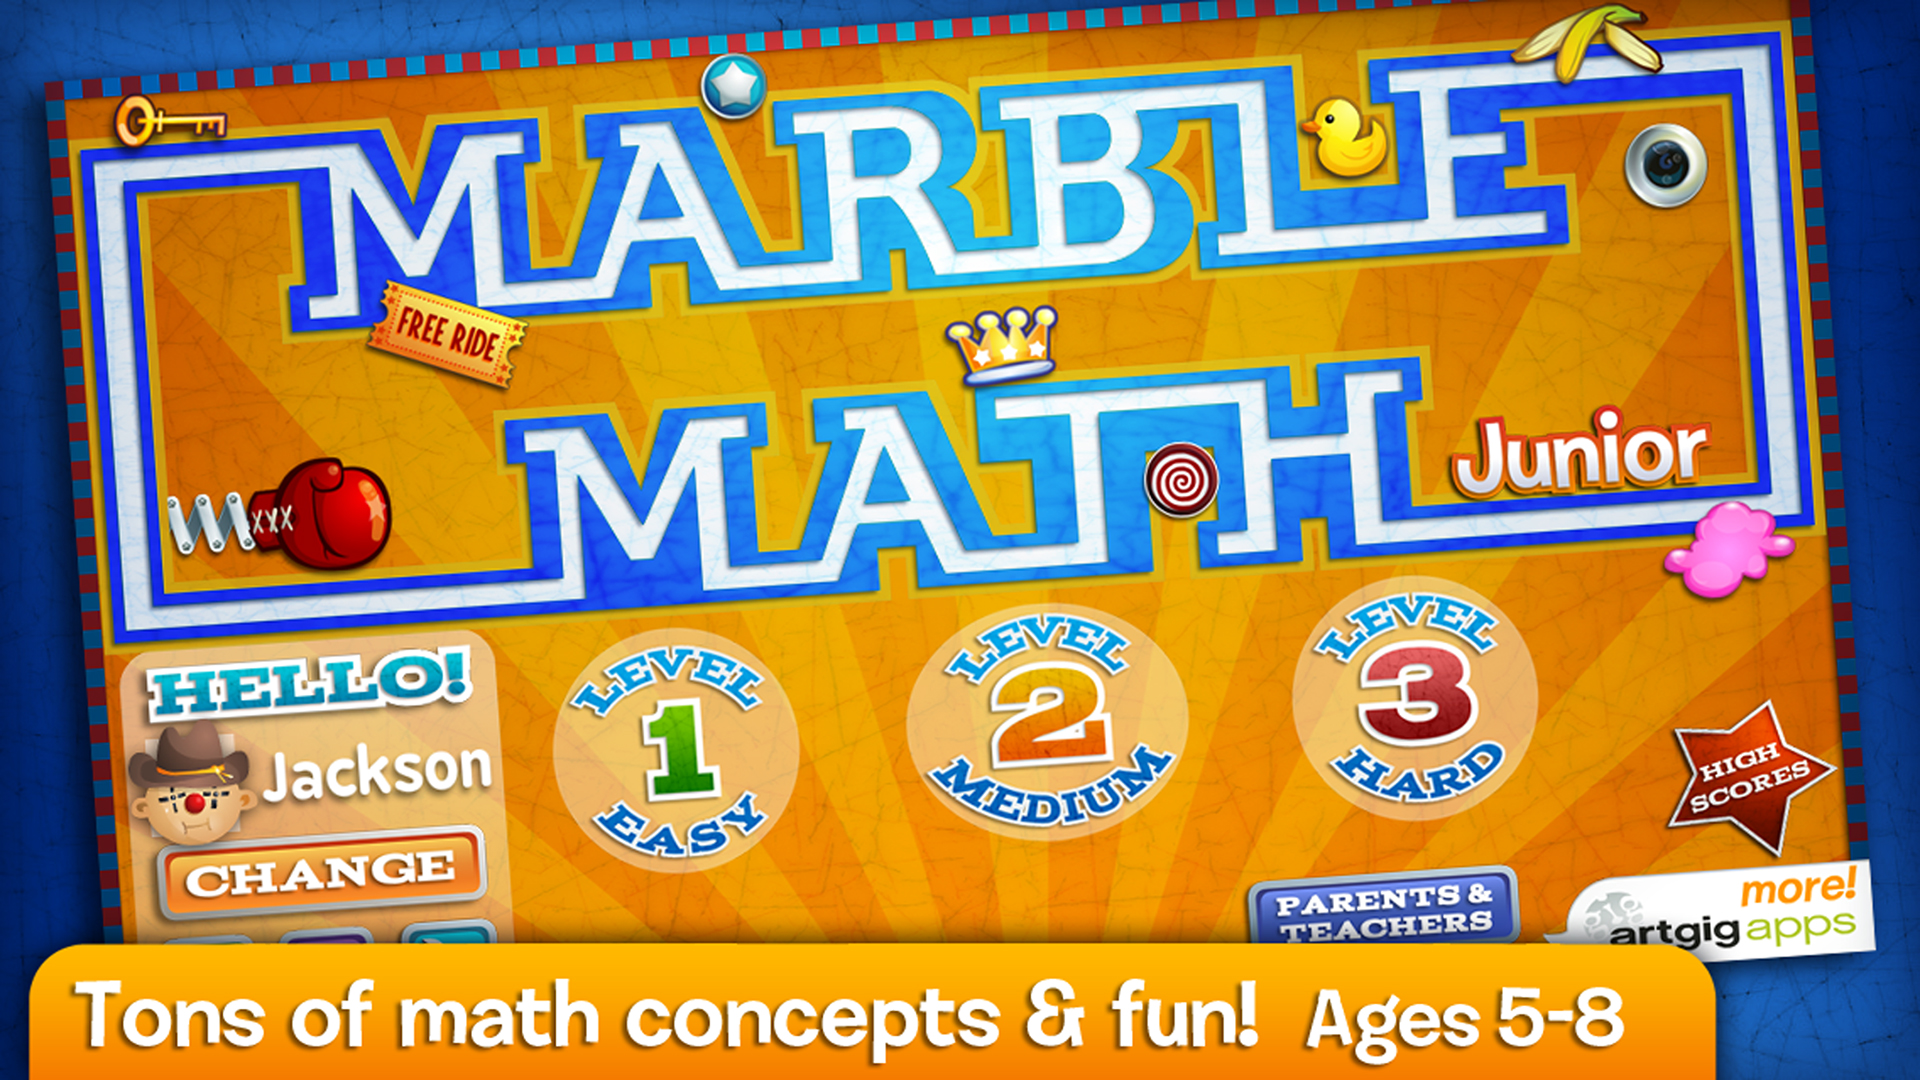 This math app consists of three difficulty stages and 16 marble styles that complement kids' personality and knowledge.